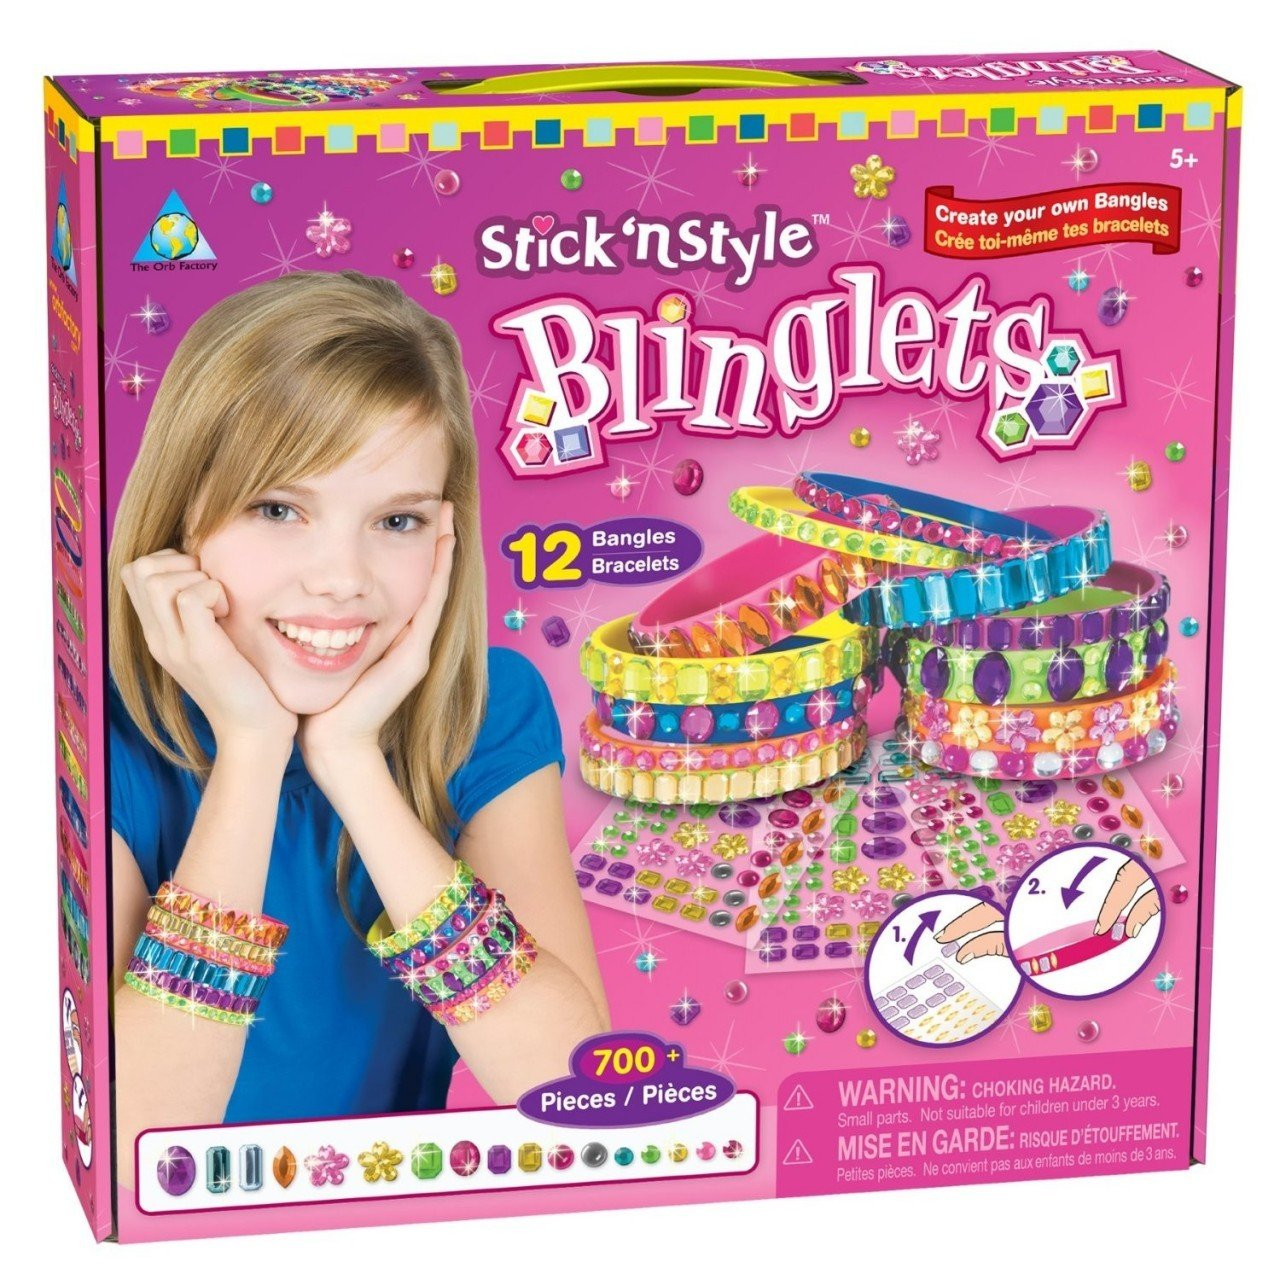 Stick and Style Blinglets Includes 12 assorted ready to decorate Blinglets, plus over 700 sparkling jewel stickers. The award winning line of Sticky Mosaic craft kits will delight all ages and all skill levels